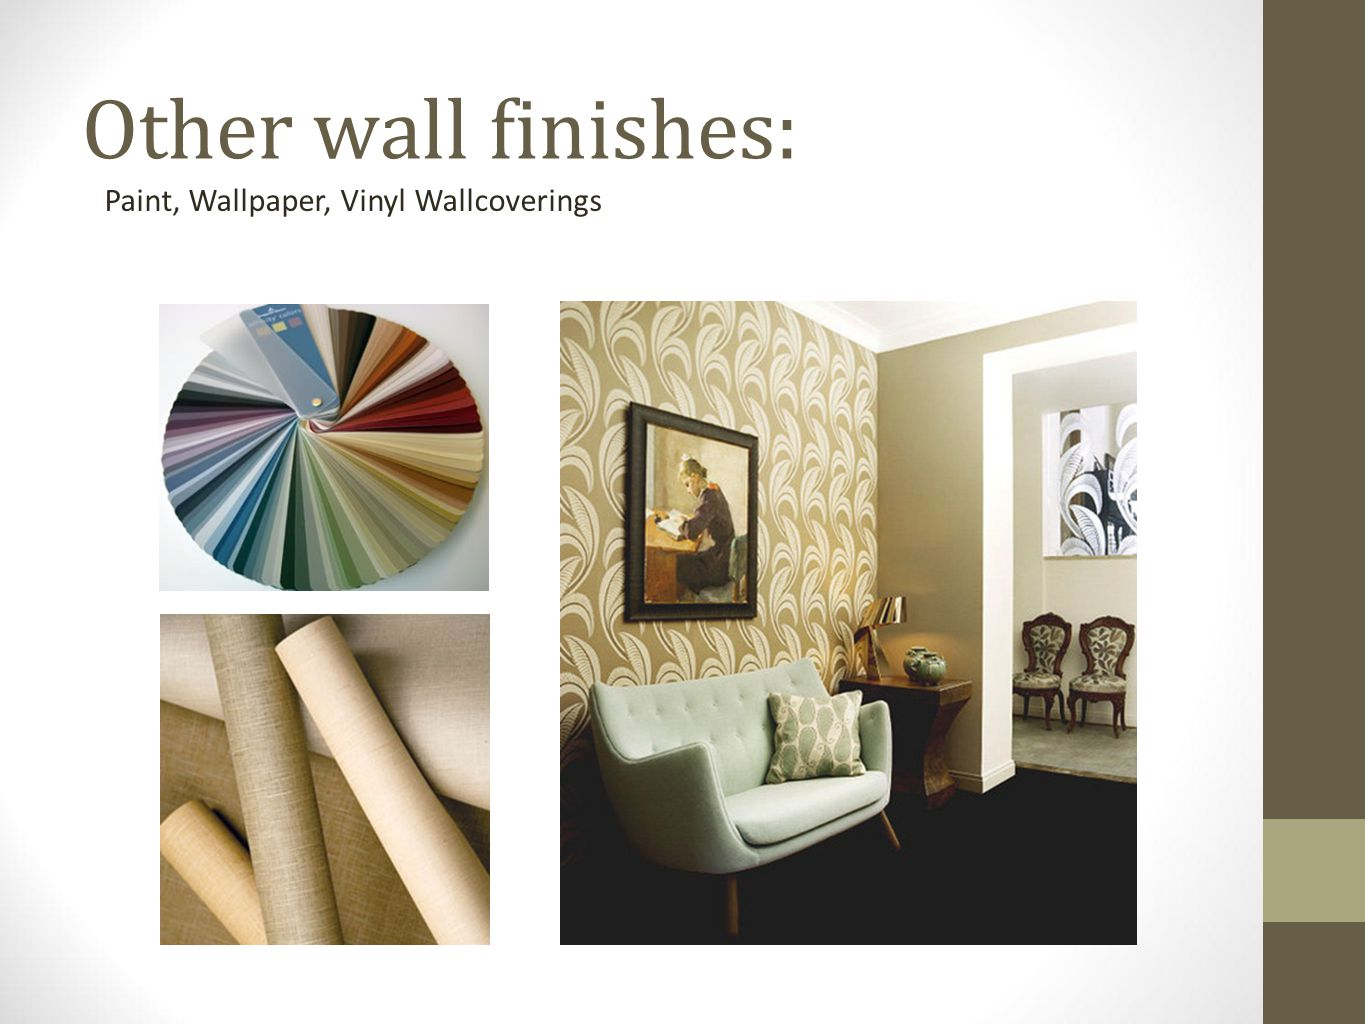 Other wall finishes: Paint, Wallpaper, Vinyl Wallcoverings